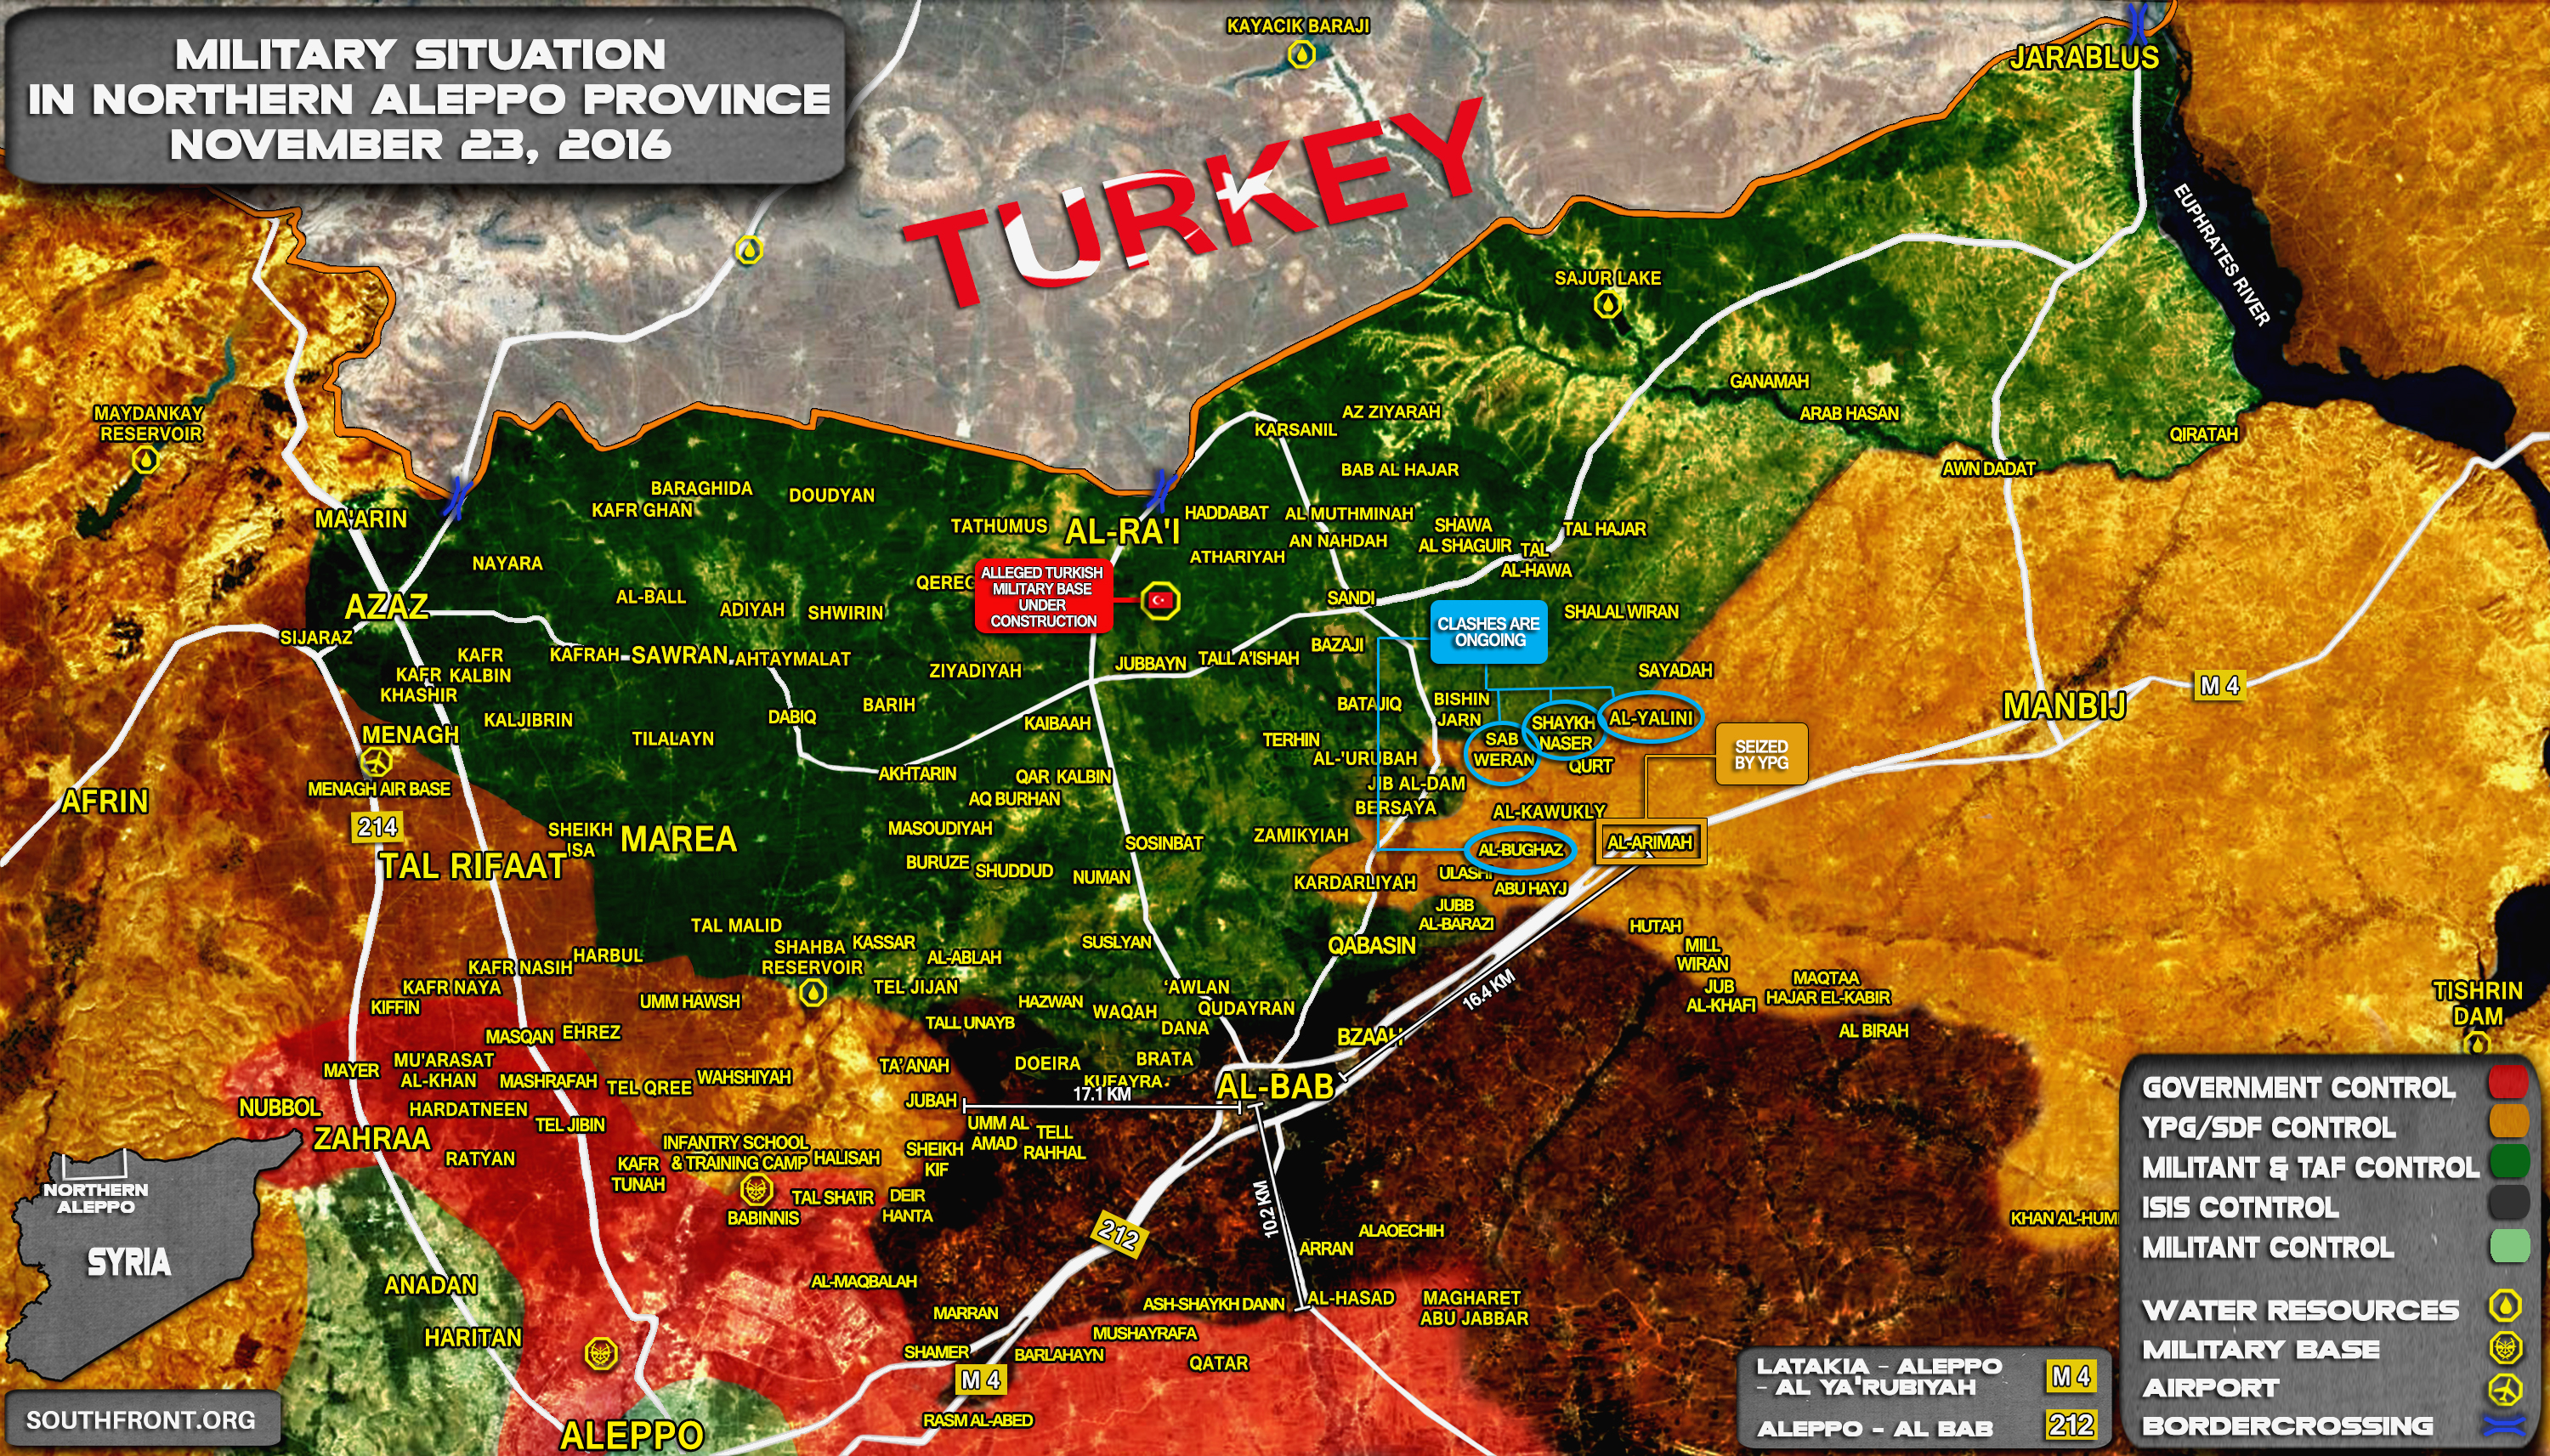 Syrian Air Force Delivers Air Strikes on Turkish Military in Northern Aleppo